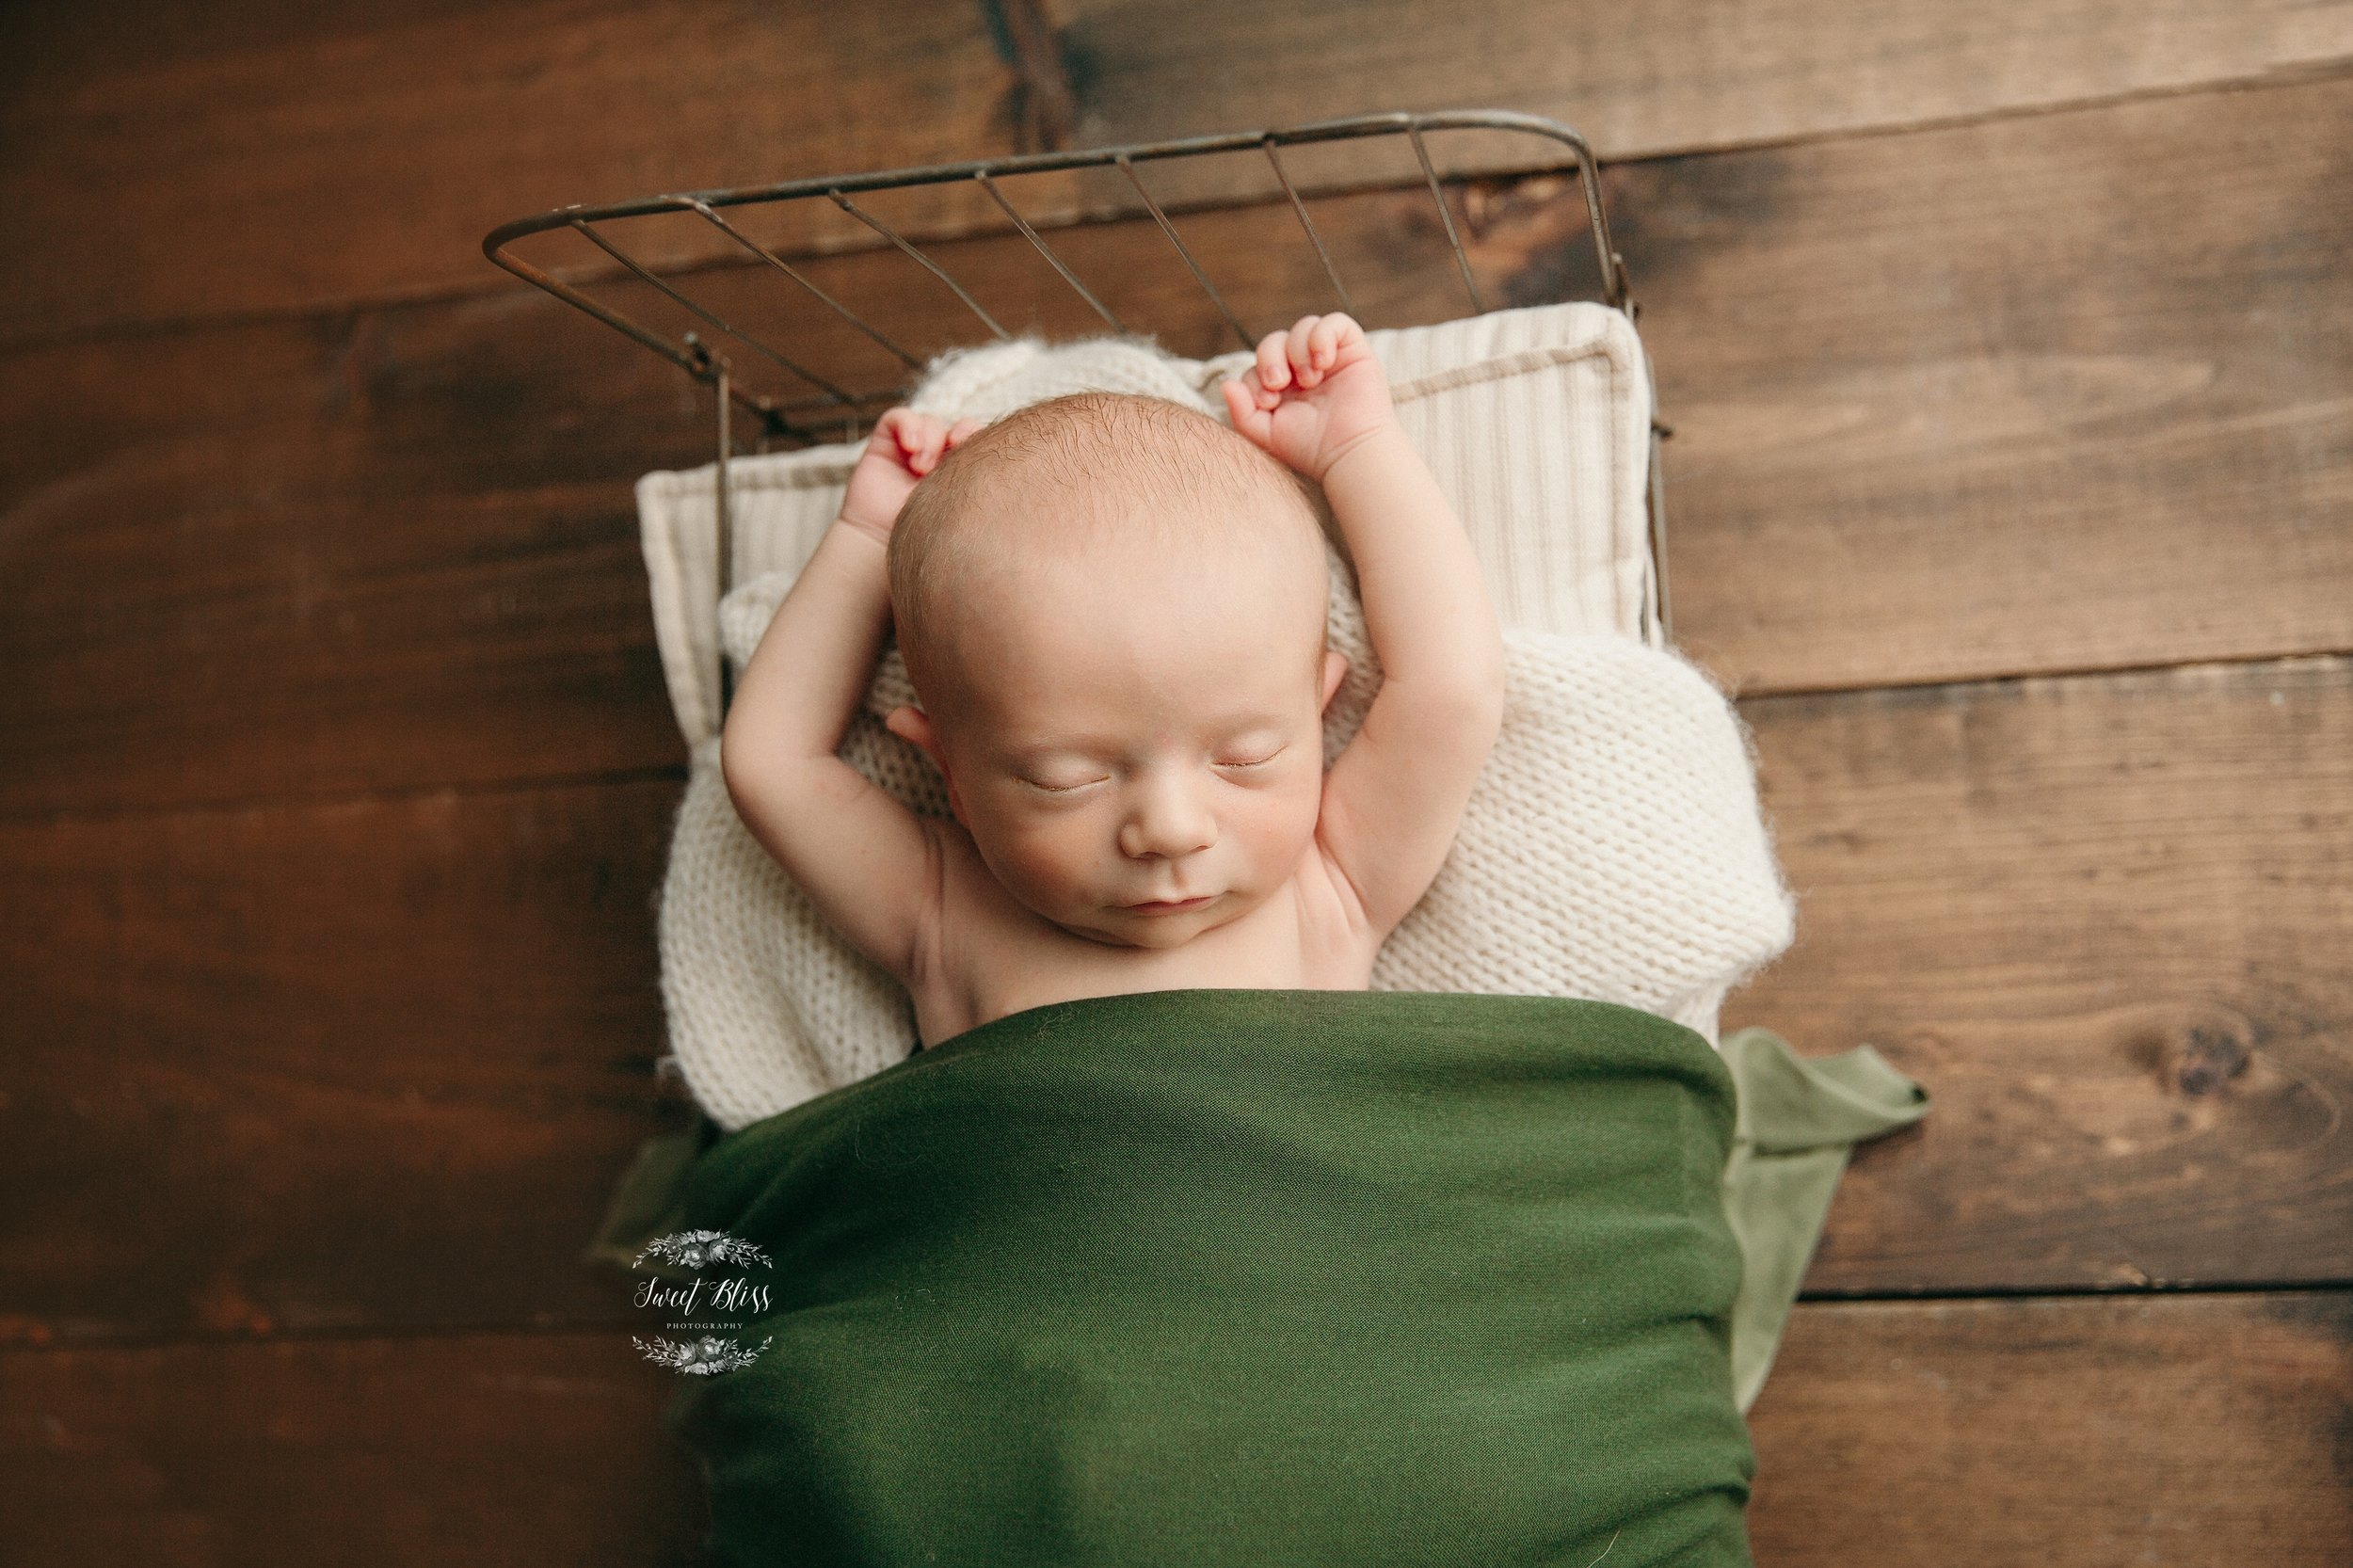 newbornphotographyinmaryland_sweetblissphoto_baltimorenewbornphotography.jpg